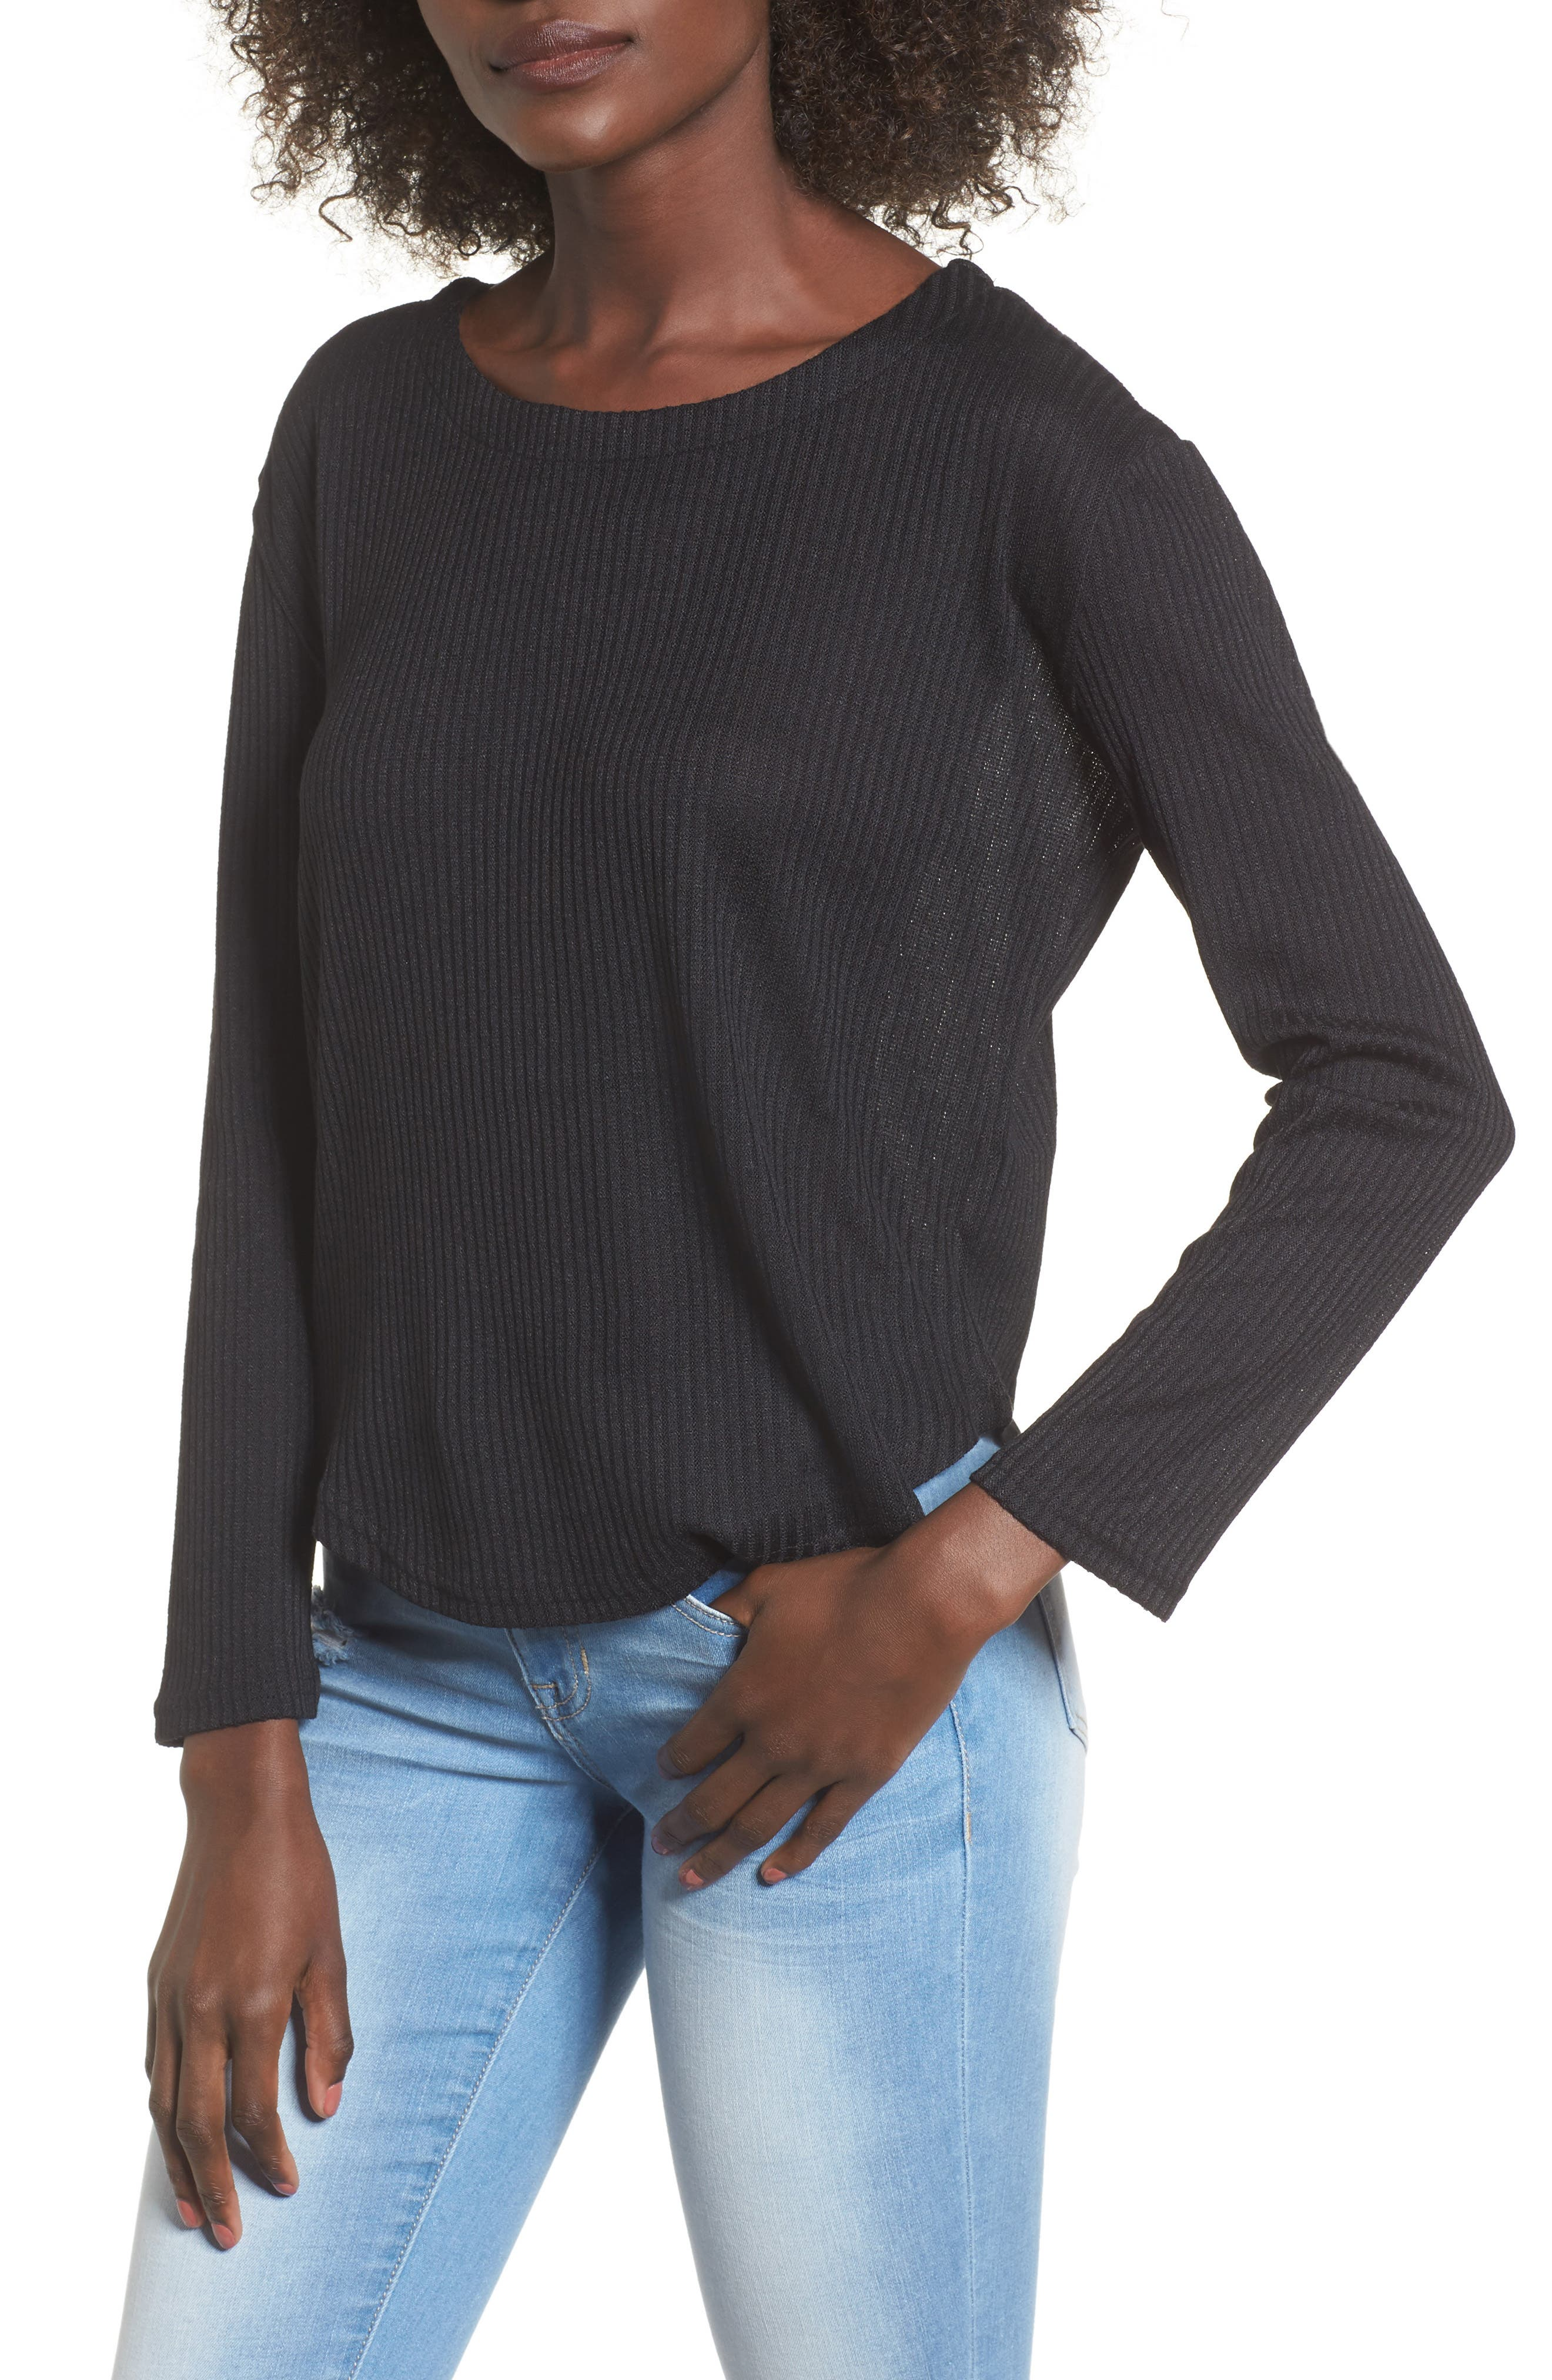 Alternate Image 1 Selected - Lira Clothing Sparrow Thermal Top